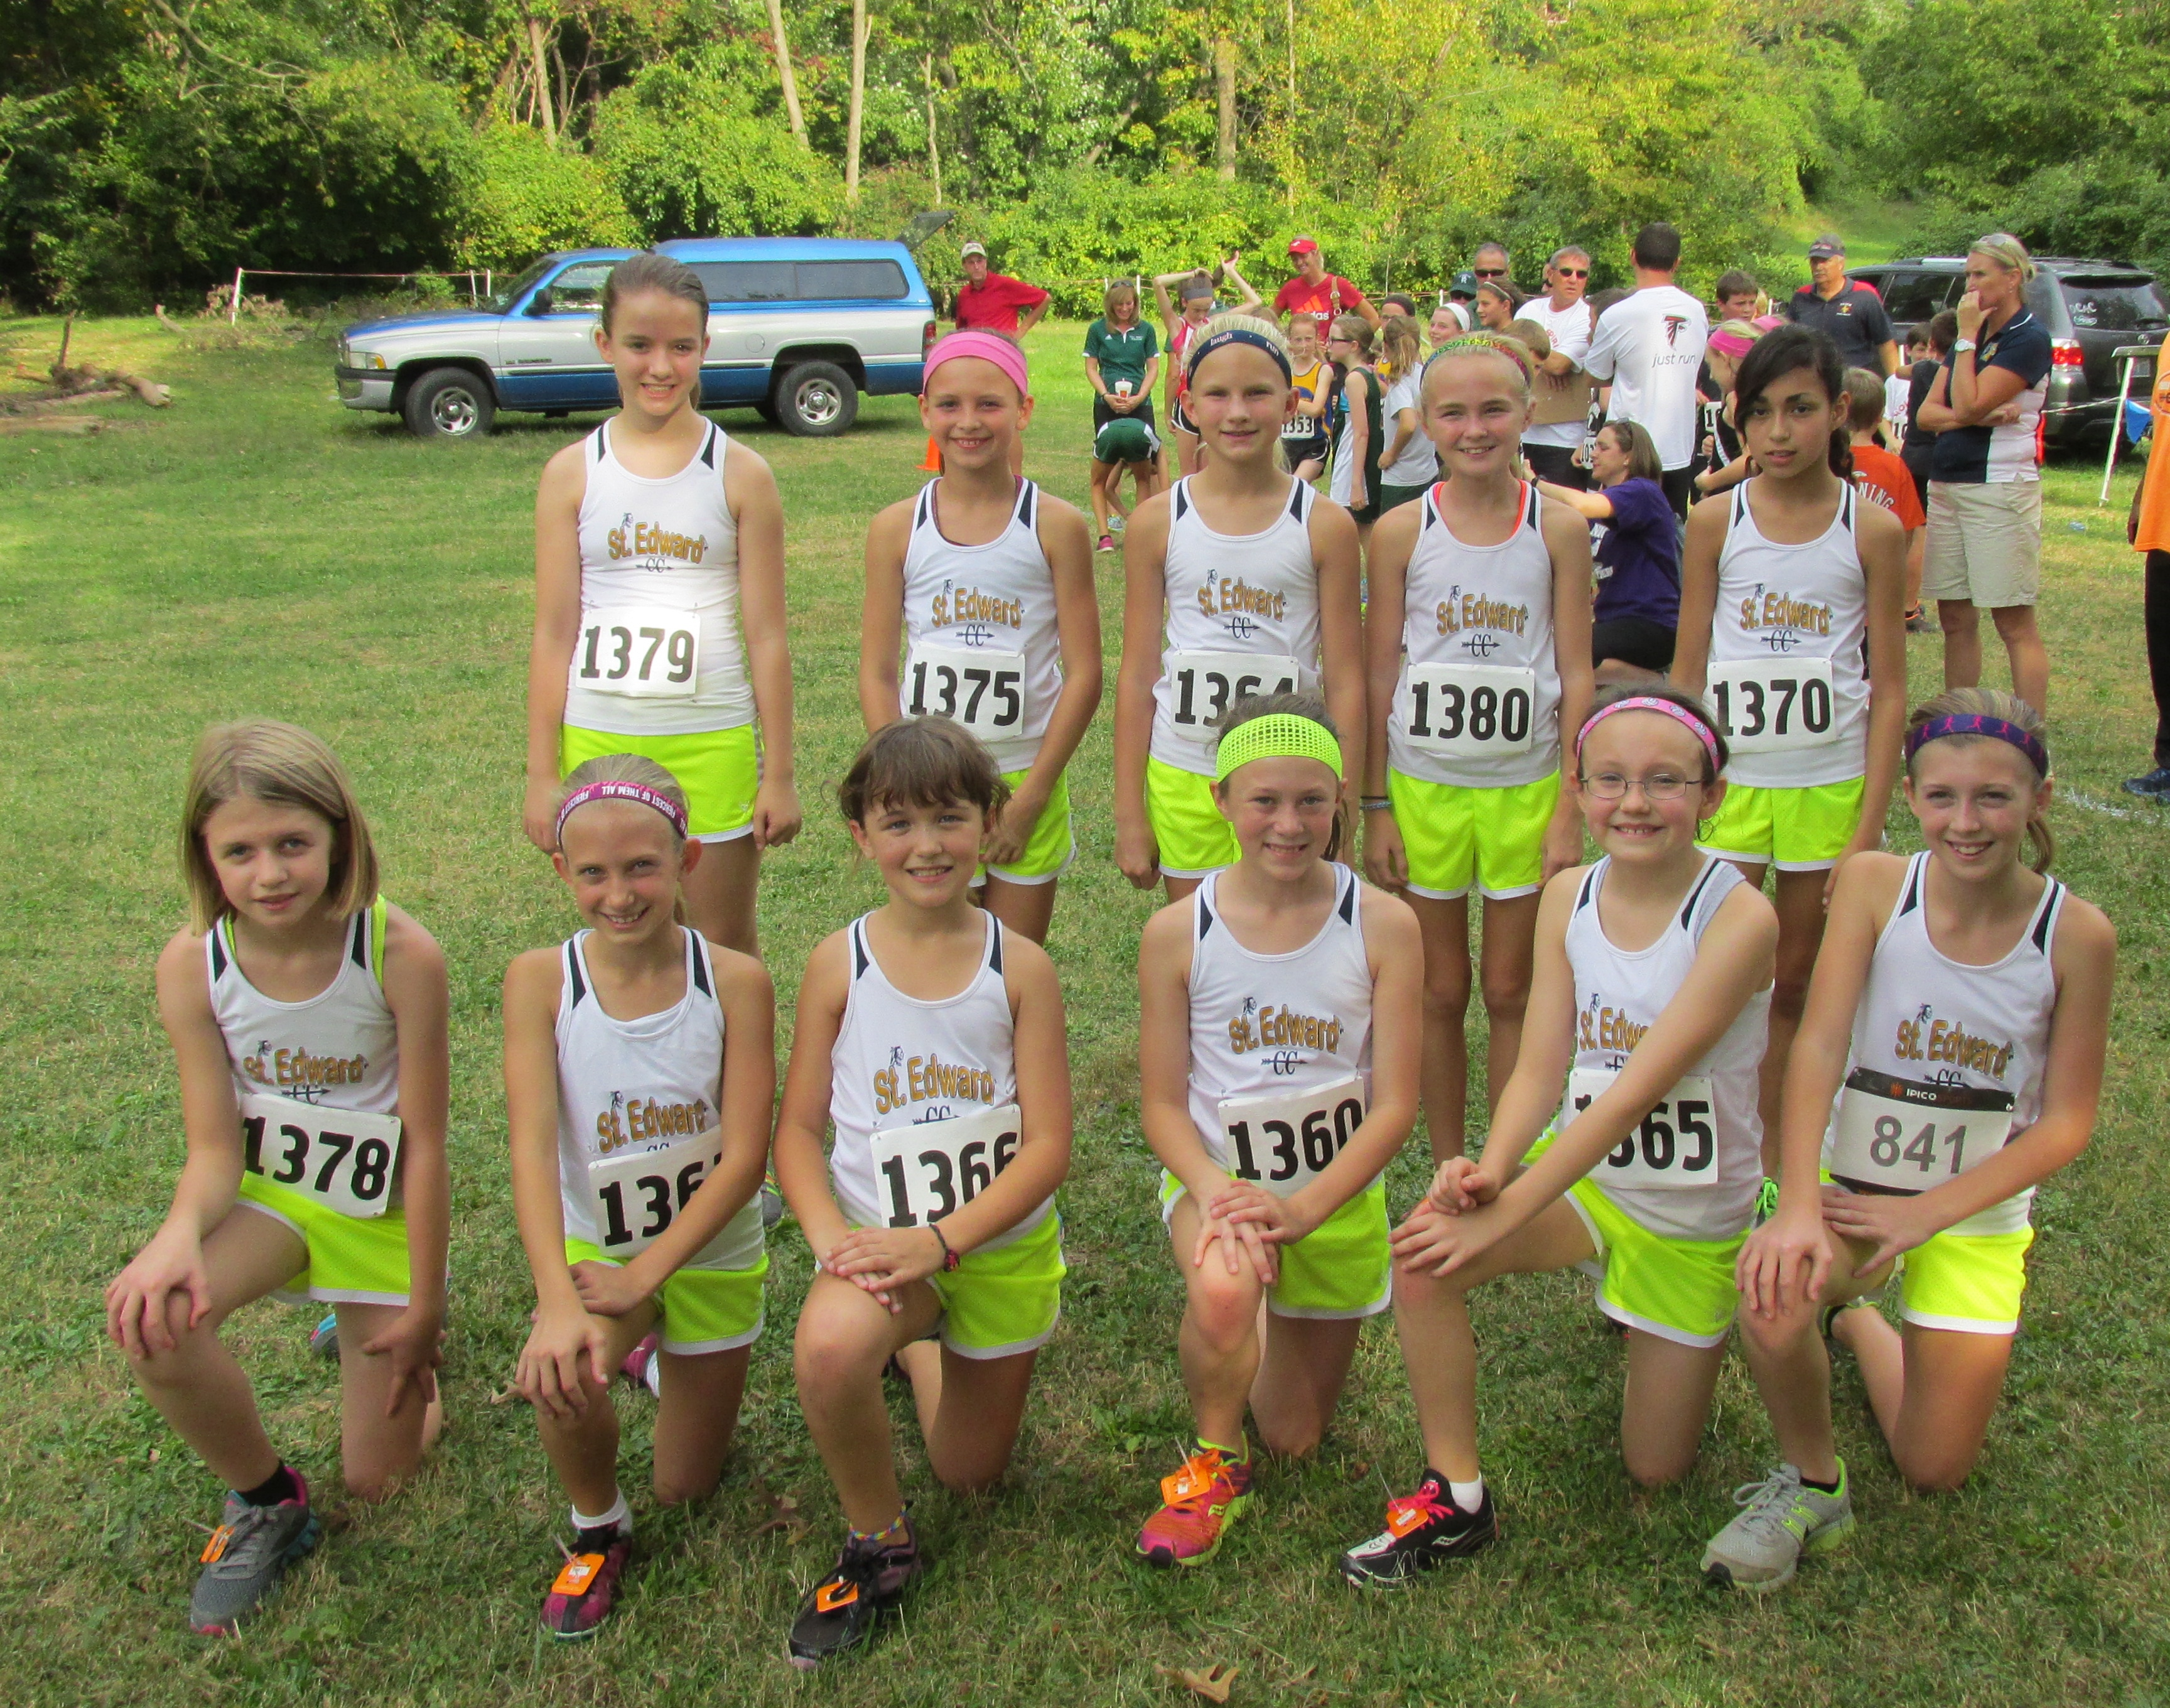 Congratulations to St Edward 5th & 6th grade girls Cross Country Team